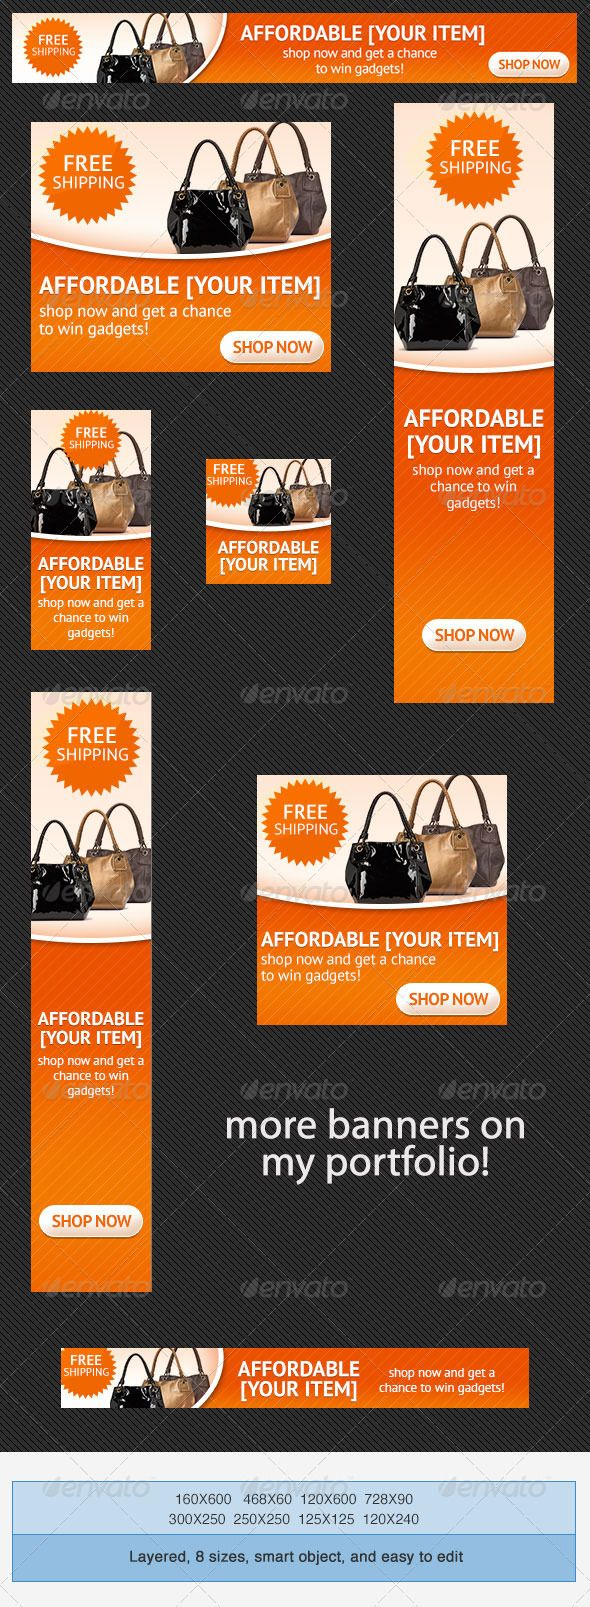 Online Shopping PSD Banner Ad Template